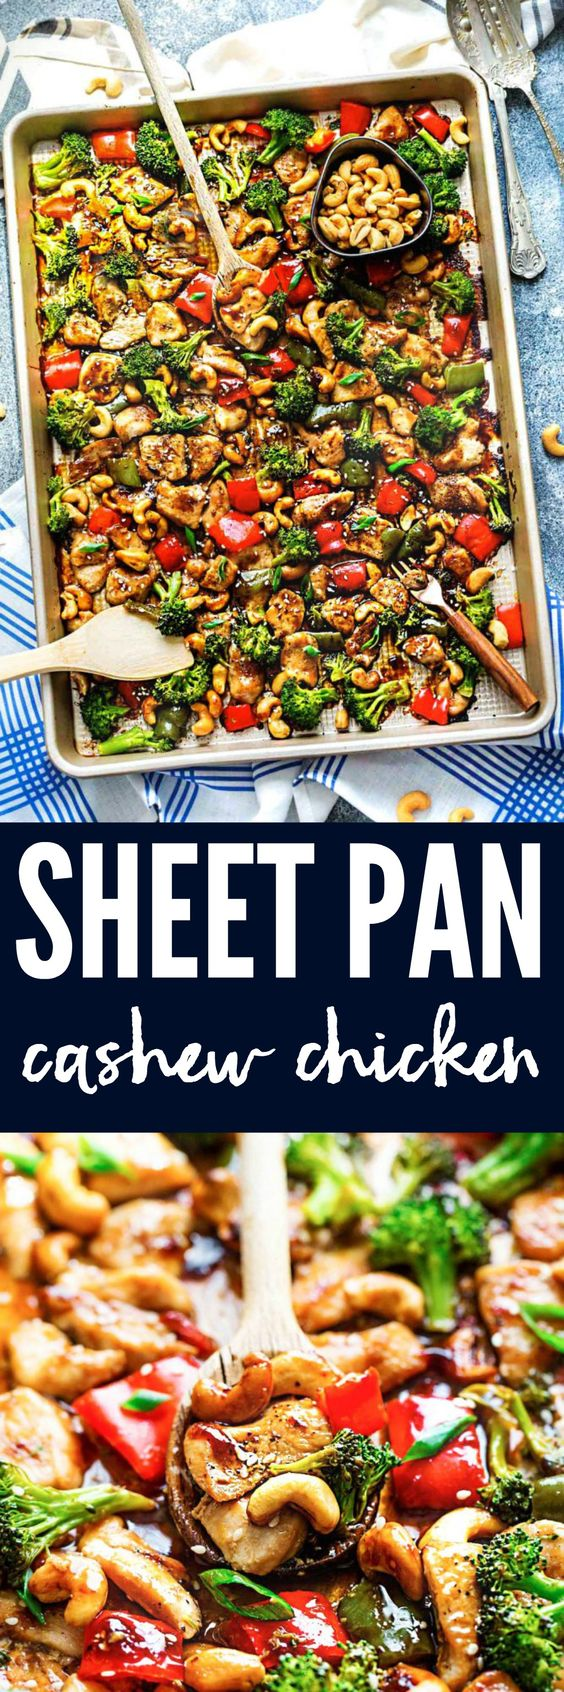 Sheet Pan Cashew Chicken Baked Supper Recipe via The Recipe Critic - This is an all in one meal with the amazing flavors of the popular takeout dish. Tender chicken surrounded by crisp and tender veggies with crunchy cashews and an incredible sweet and savory sauce.